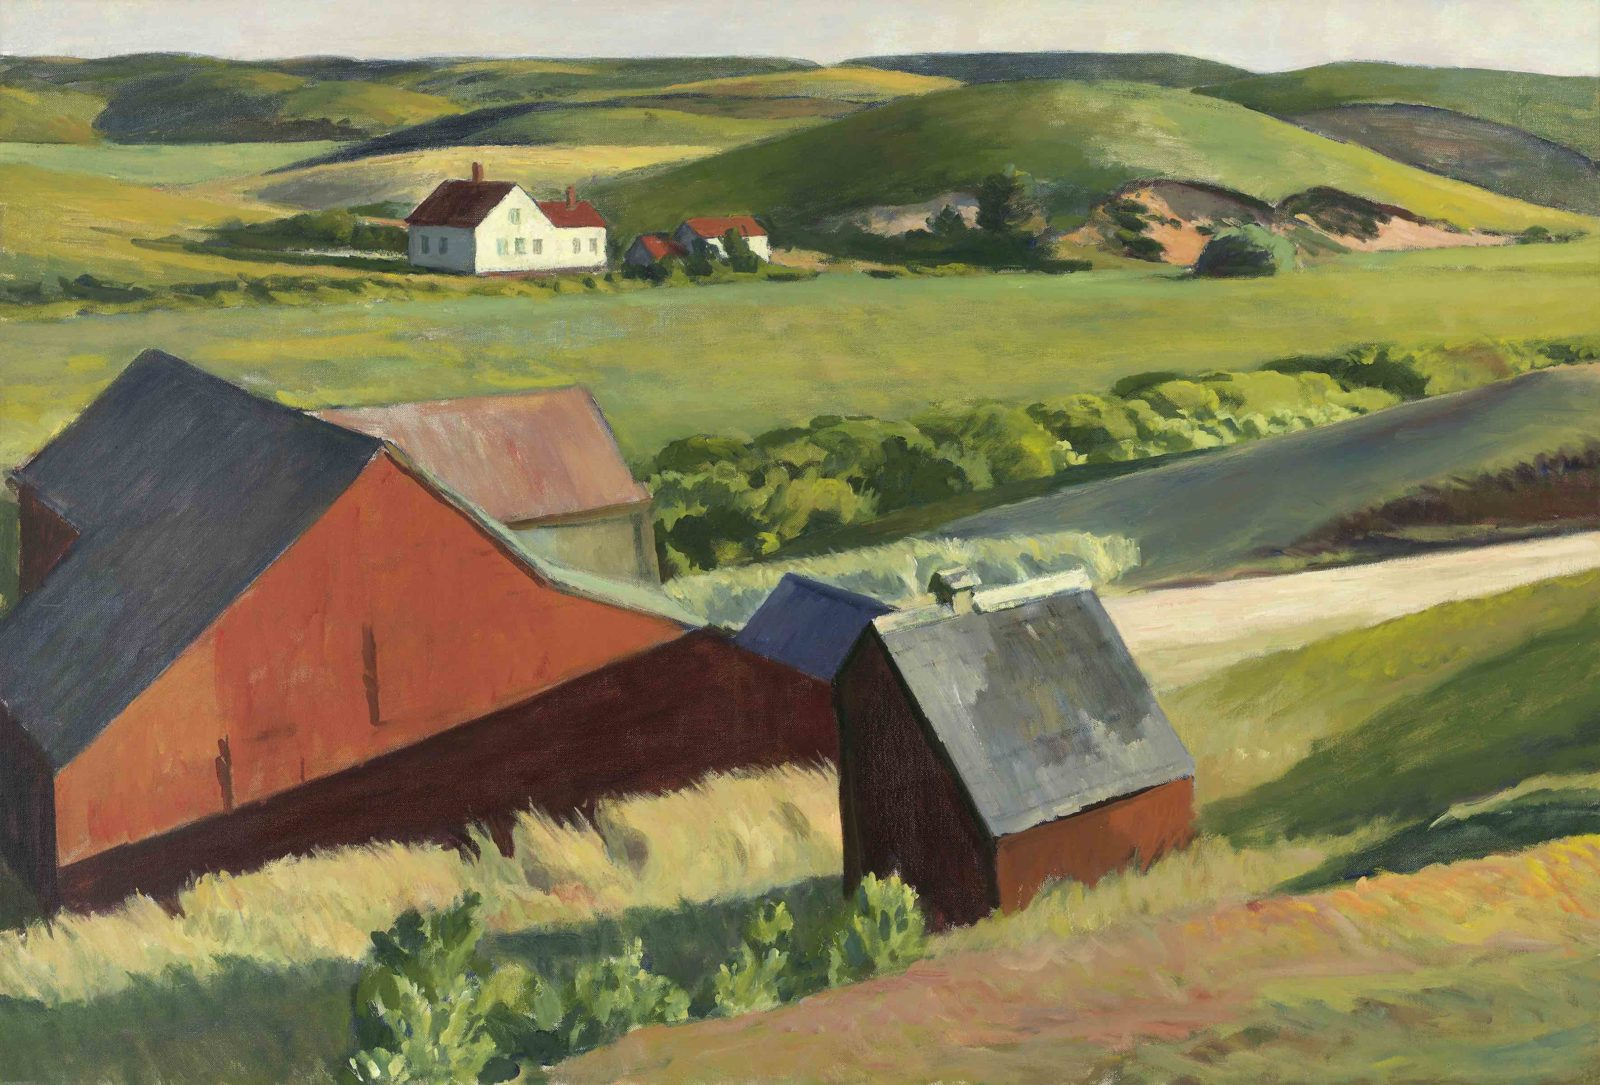 EDWARD HOPPER COBB'S BARNS, SOUTH TRURO, 1930–1933